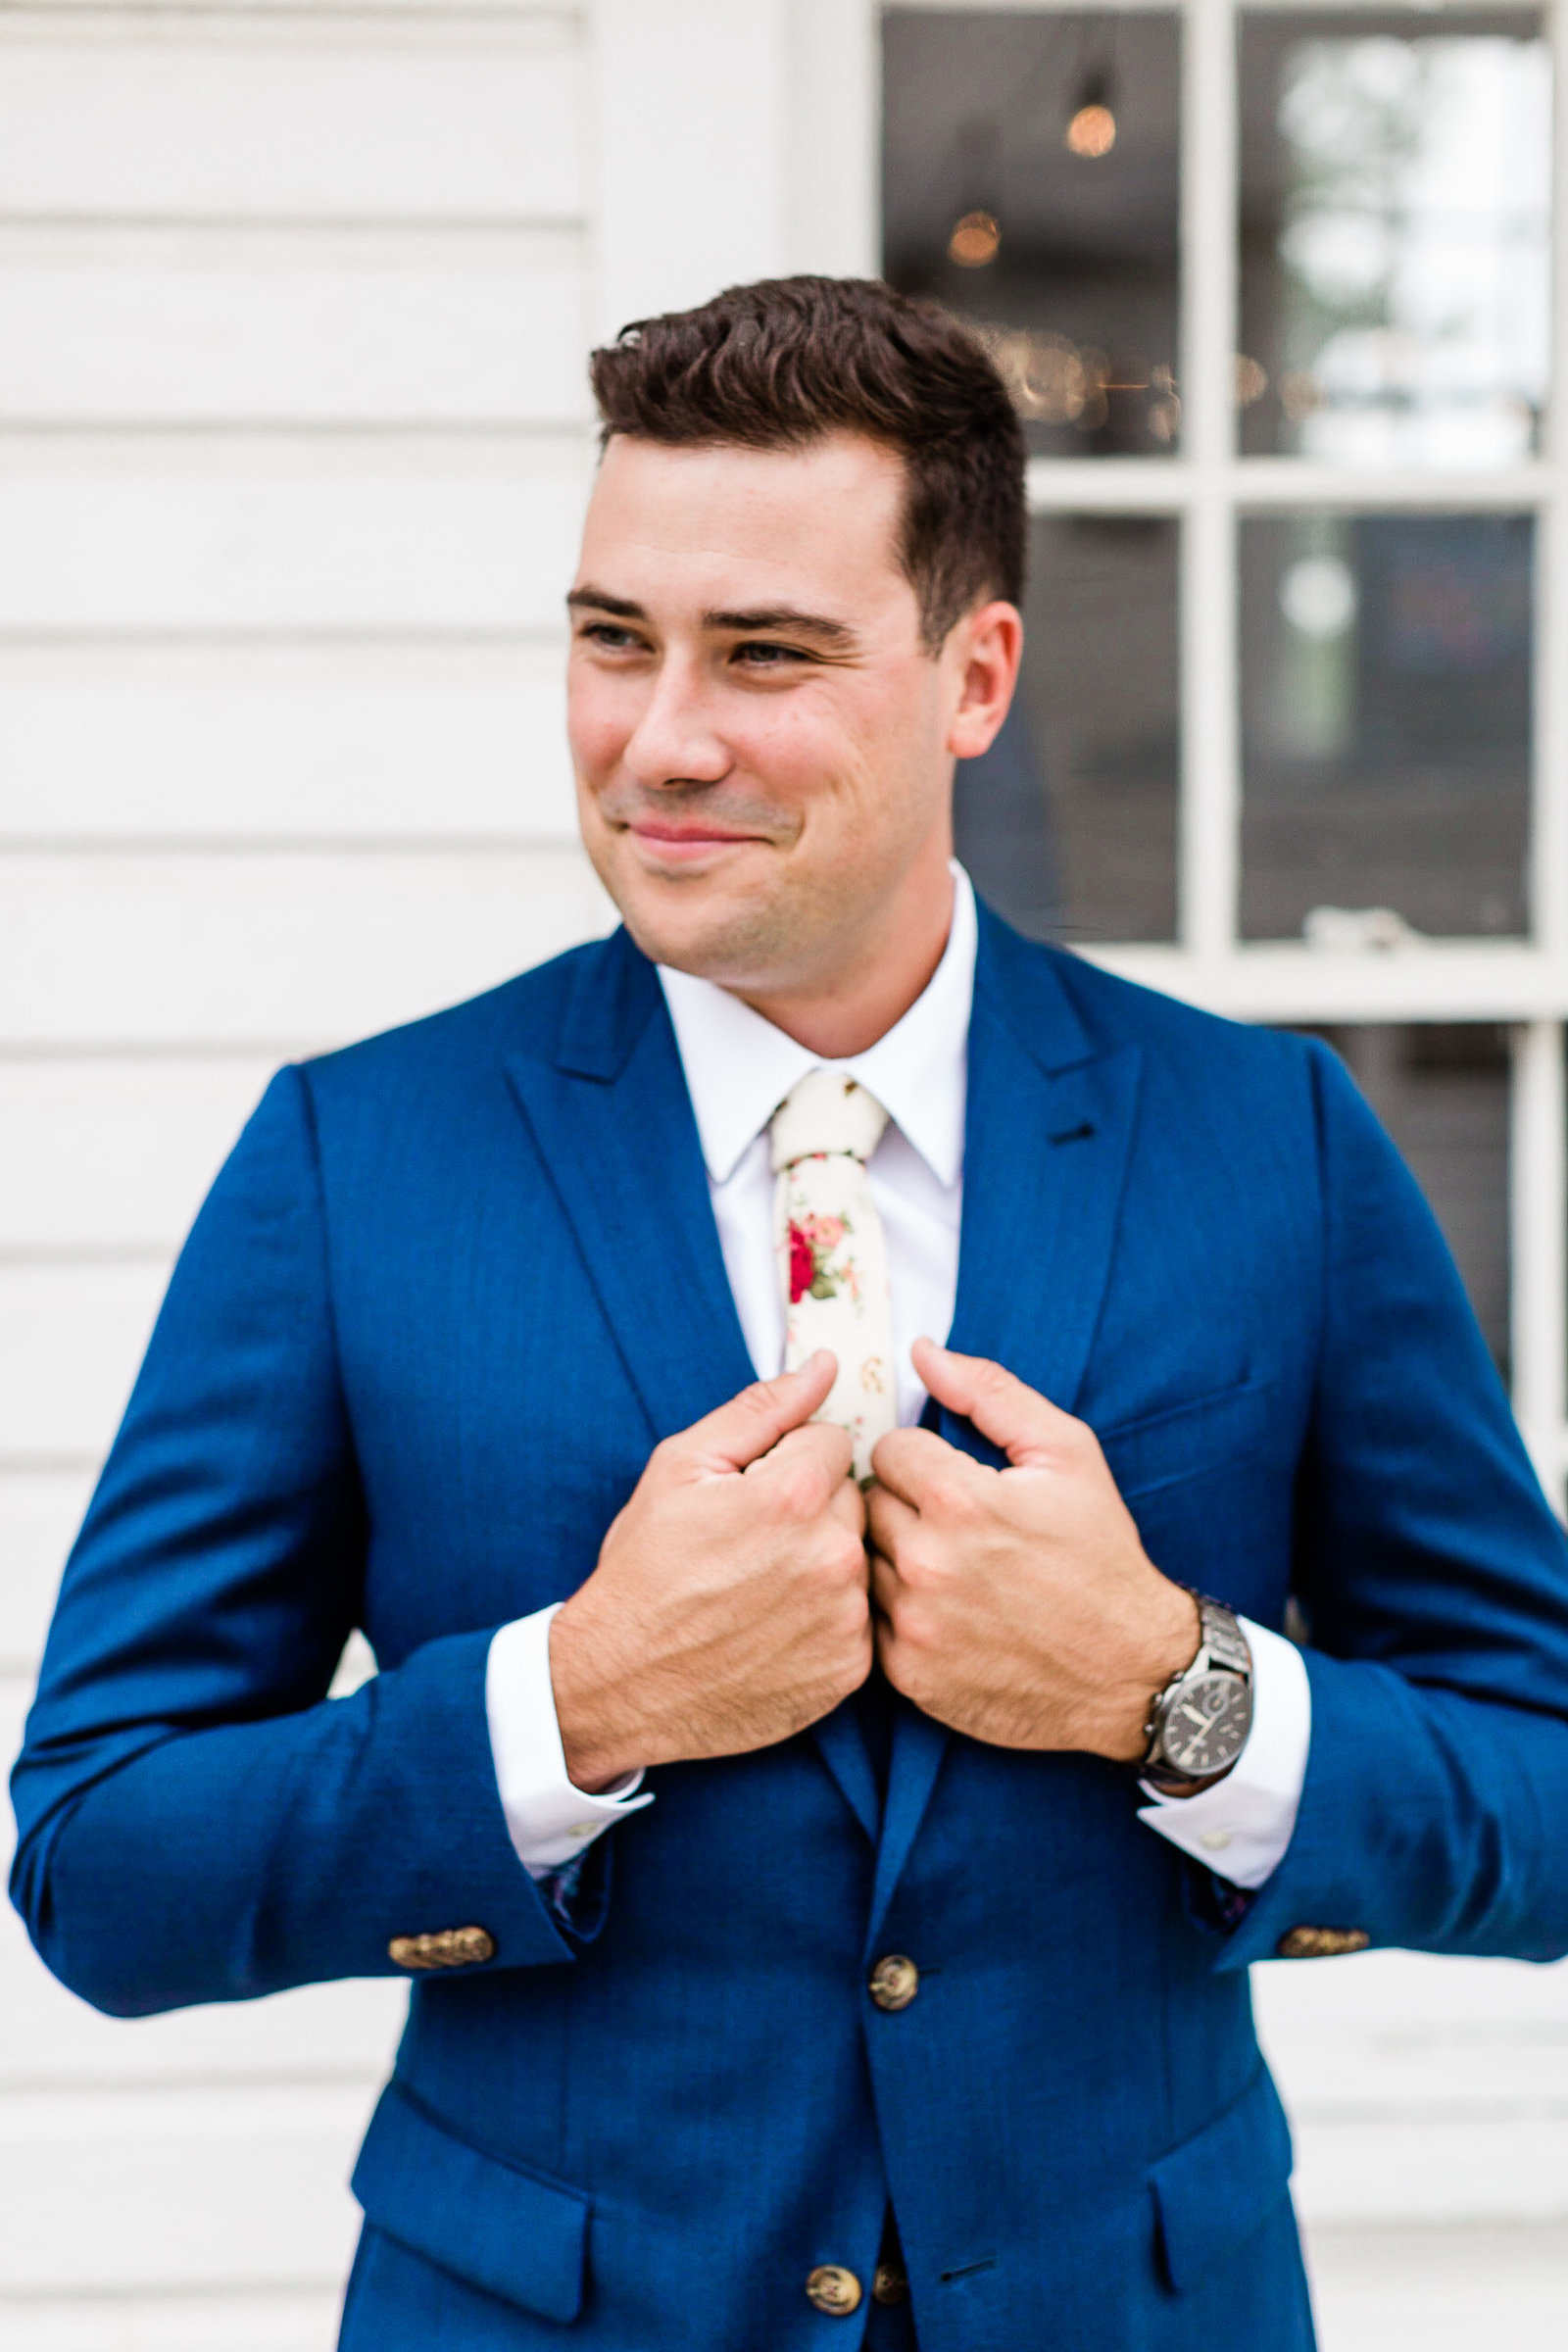 •	Close up of handsome groom in blue suit with white floral tie